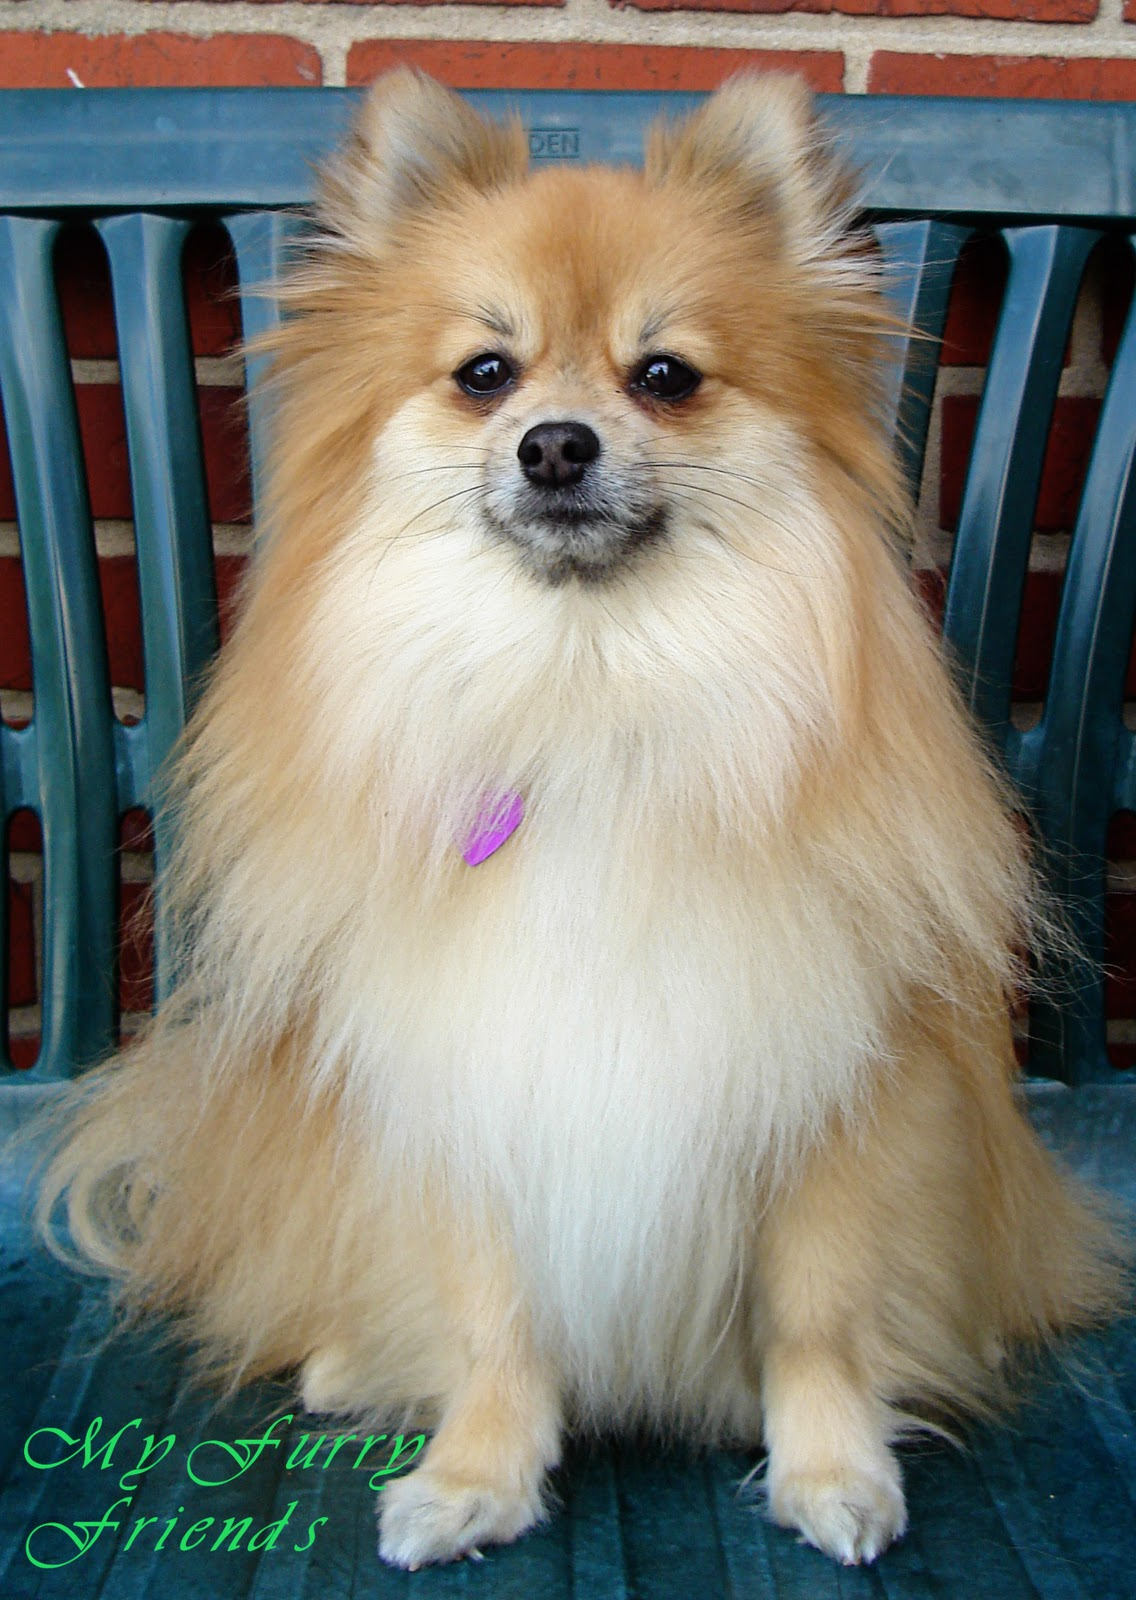 pet grooming: the good, the bad, & the furry: grooming pomeranians